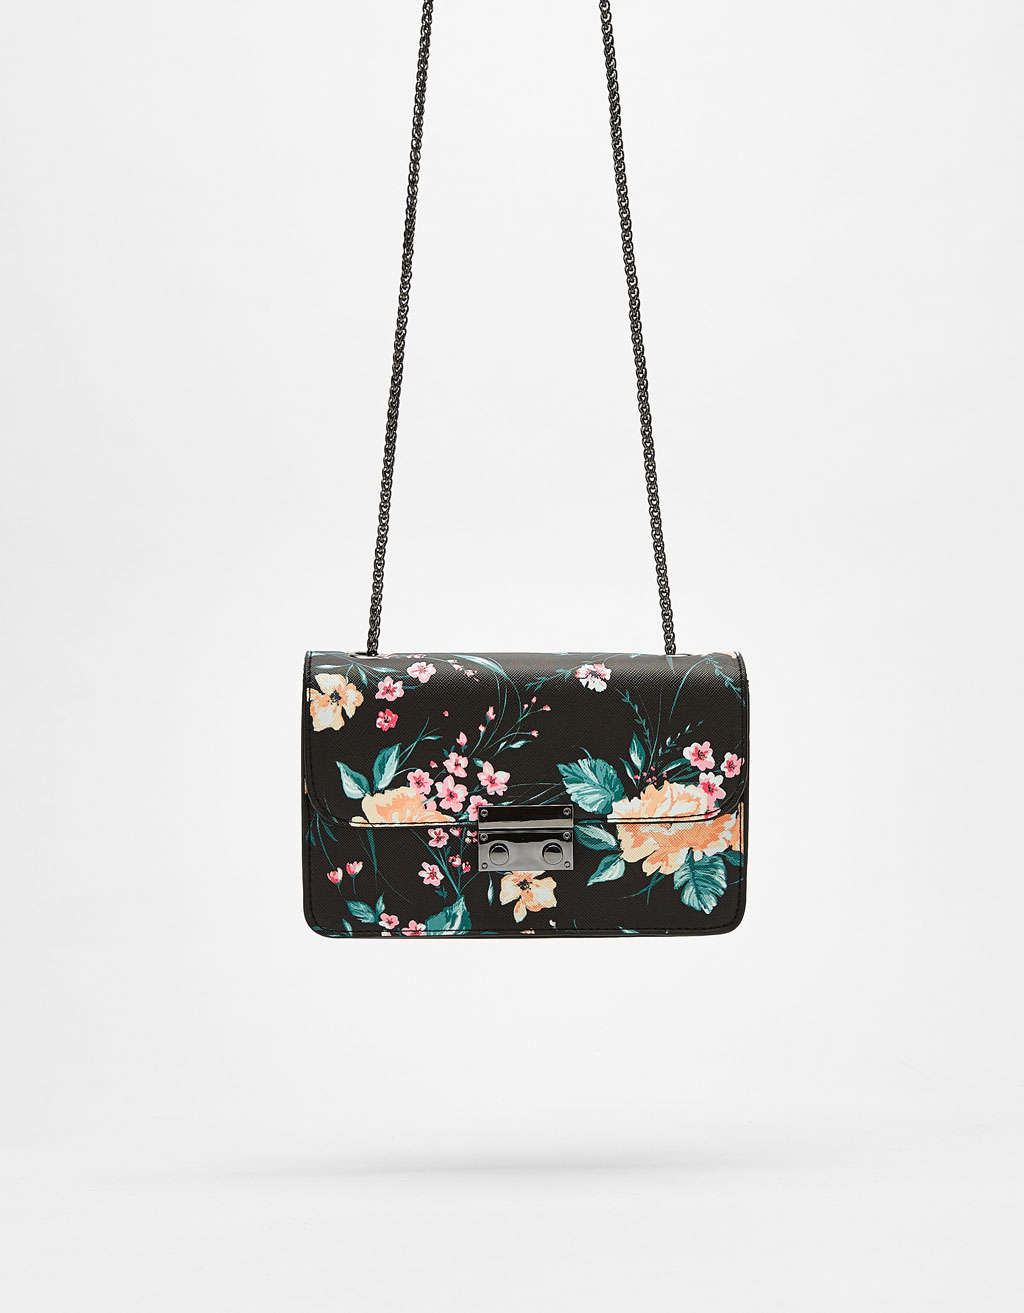 Mini lock tas met print